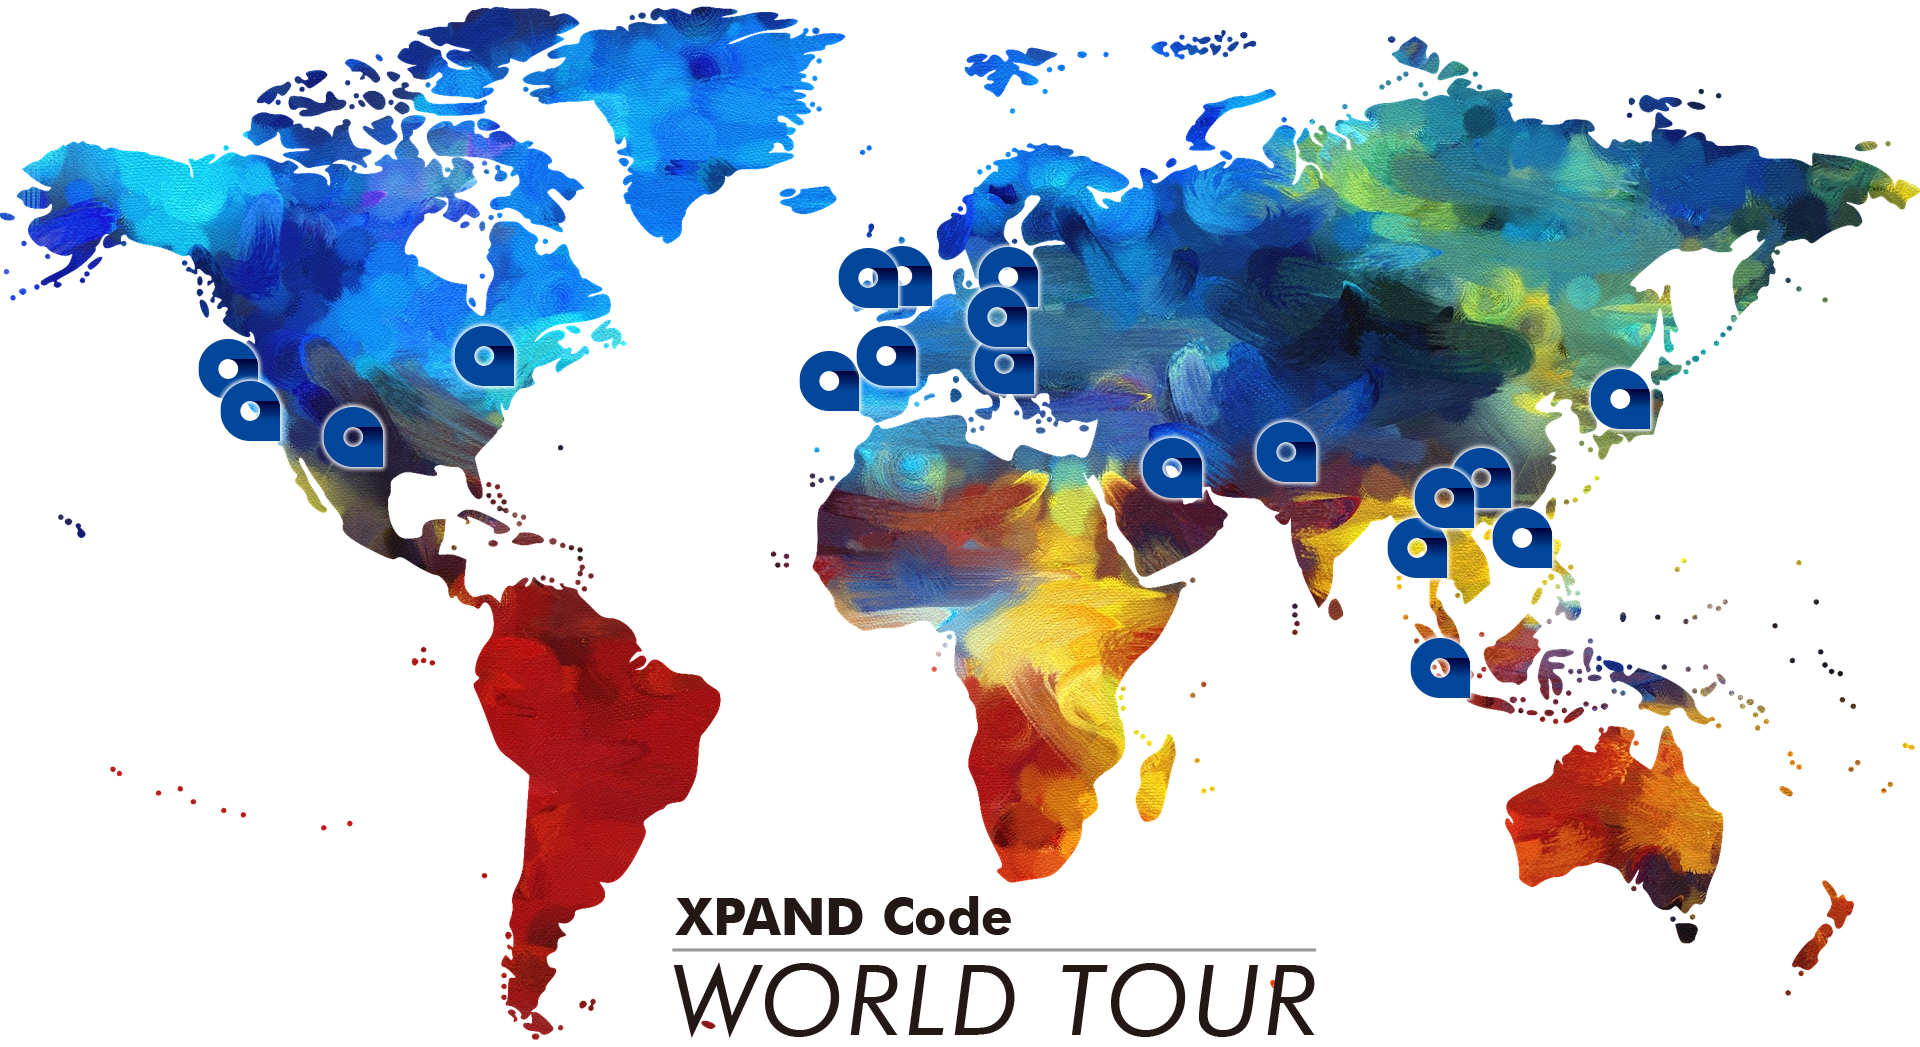 XPAND Code World Tour